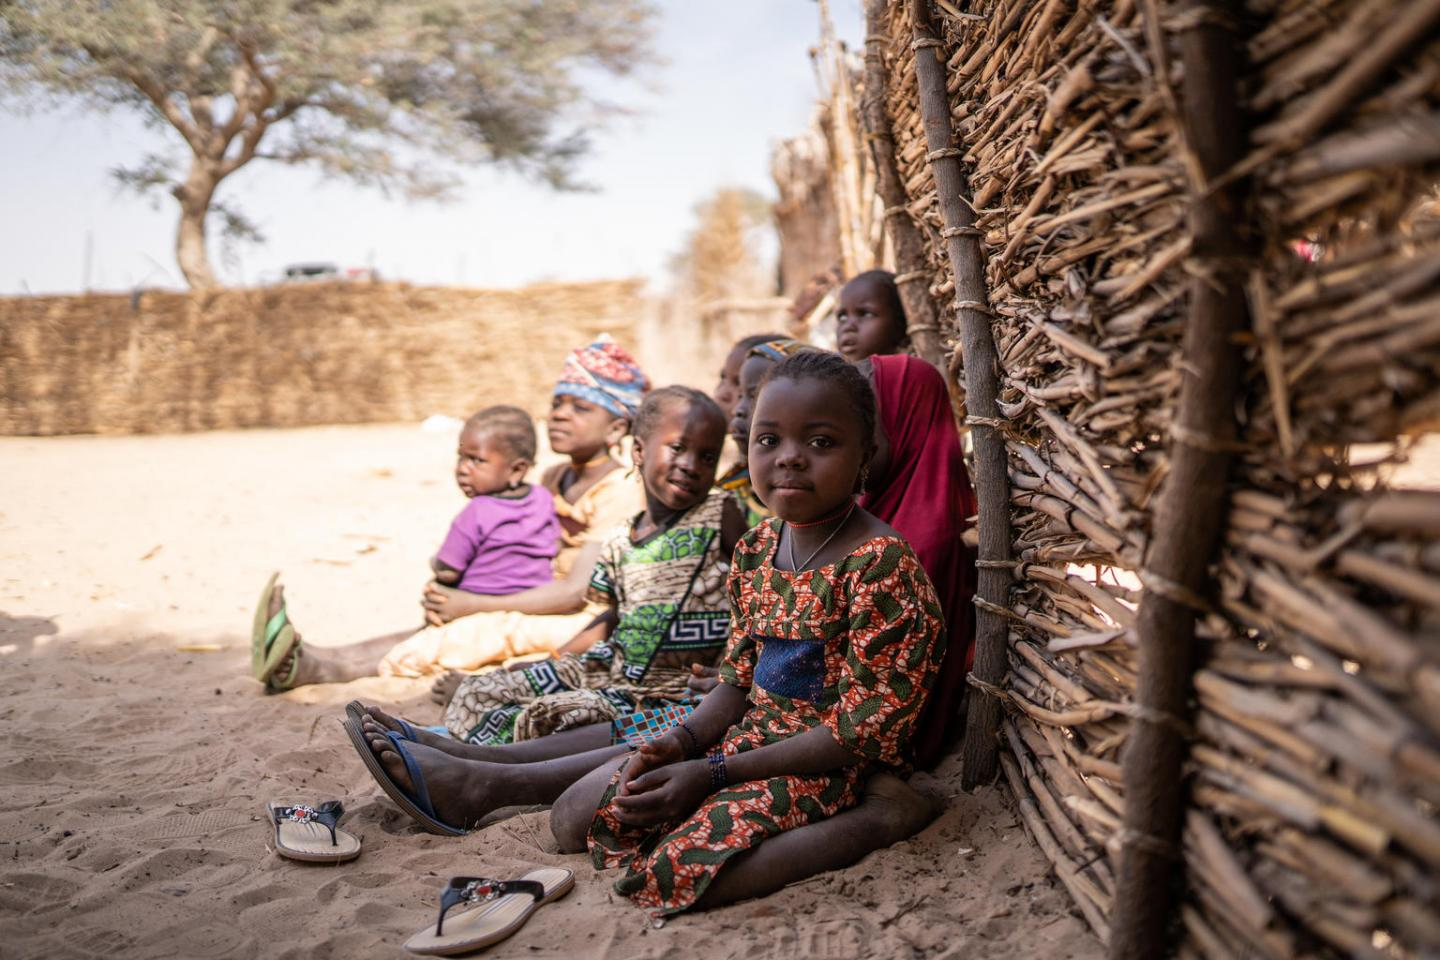 2.3 million children in need of protection in the Central Sahel region in 2020, a more than 80 per cent increase in one year